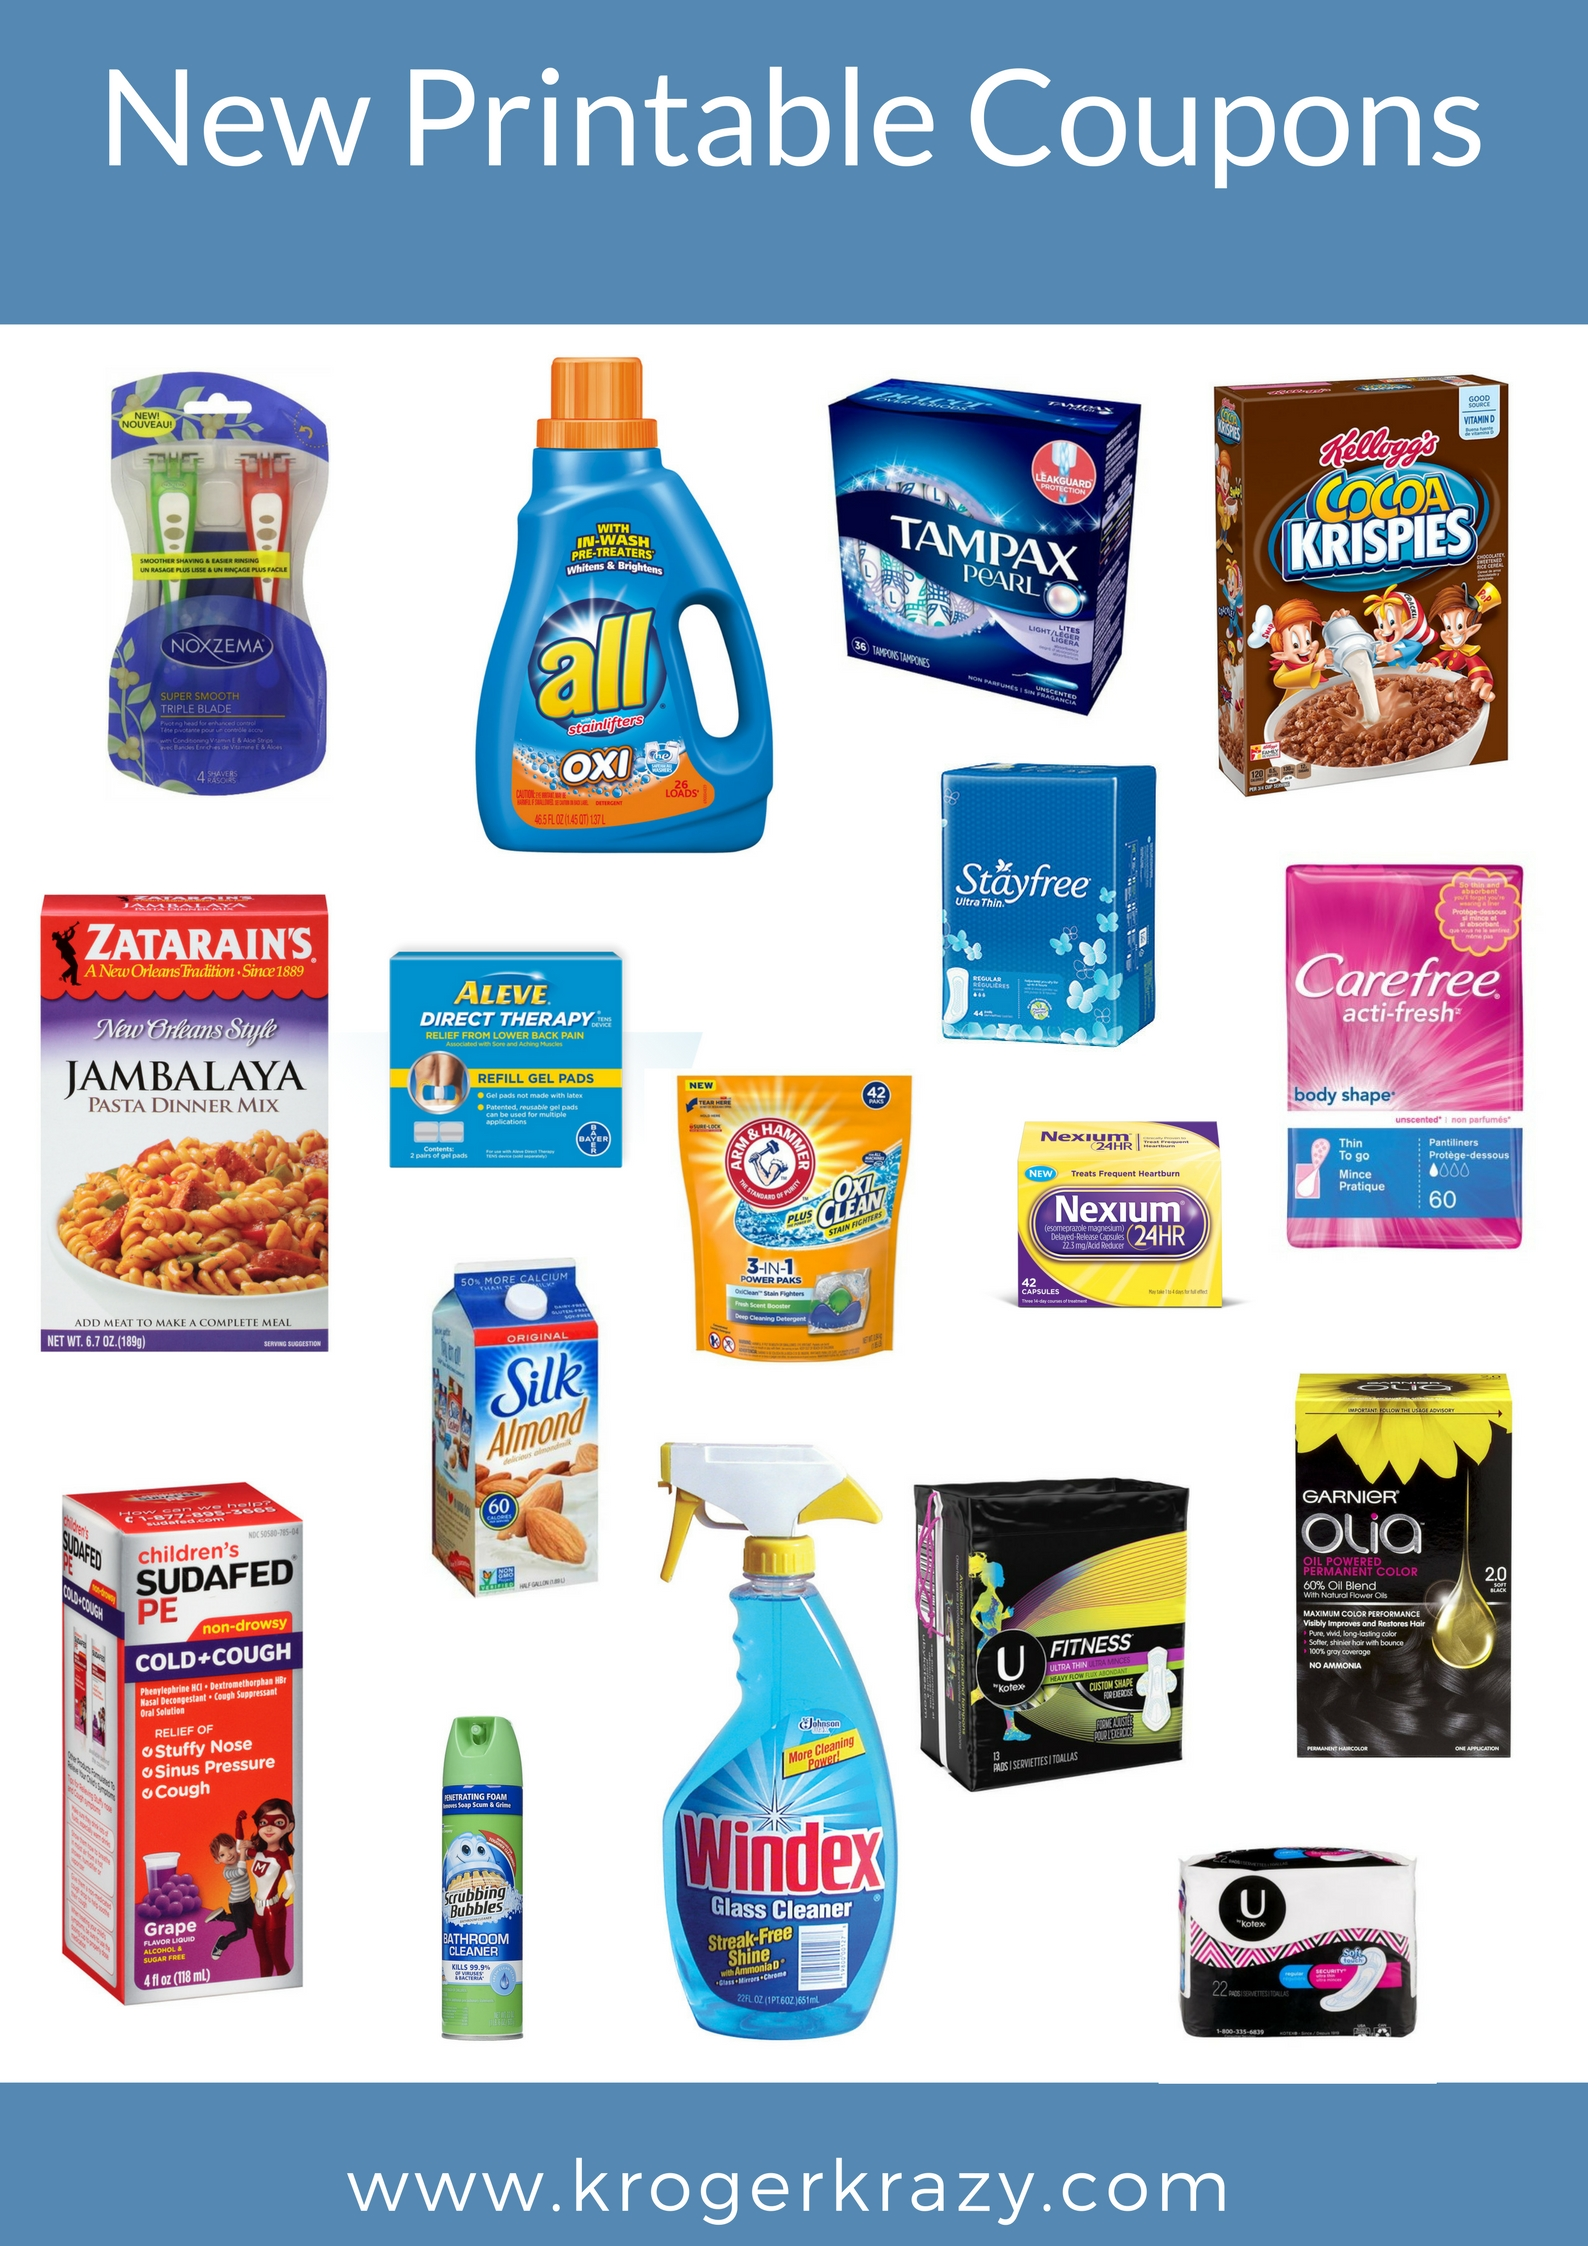 image about Tampax Coupons Printable titled Refreshing Printable Discount coupons!!! Scrubbing Bubbles, all, Snuggle